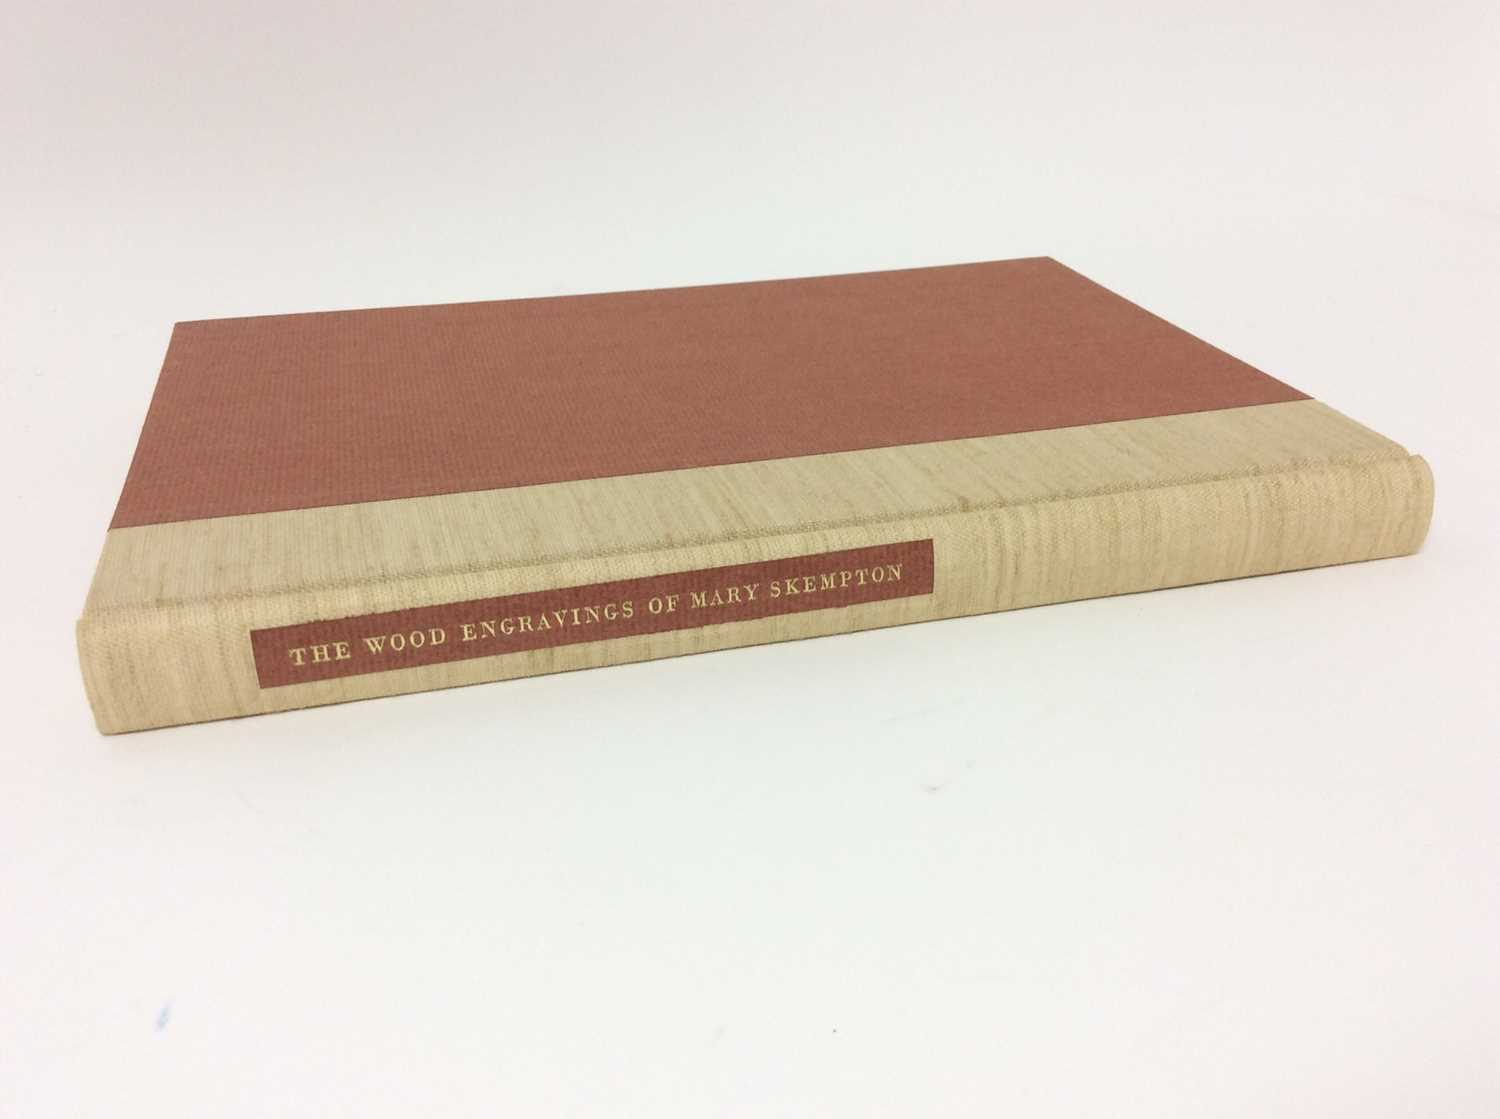 Mary Skempton - The Wood Engravings of Mary Skempton limited edition of 150